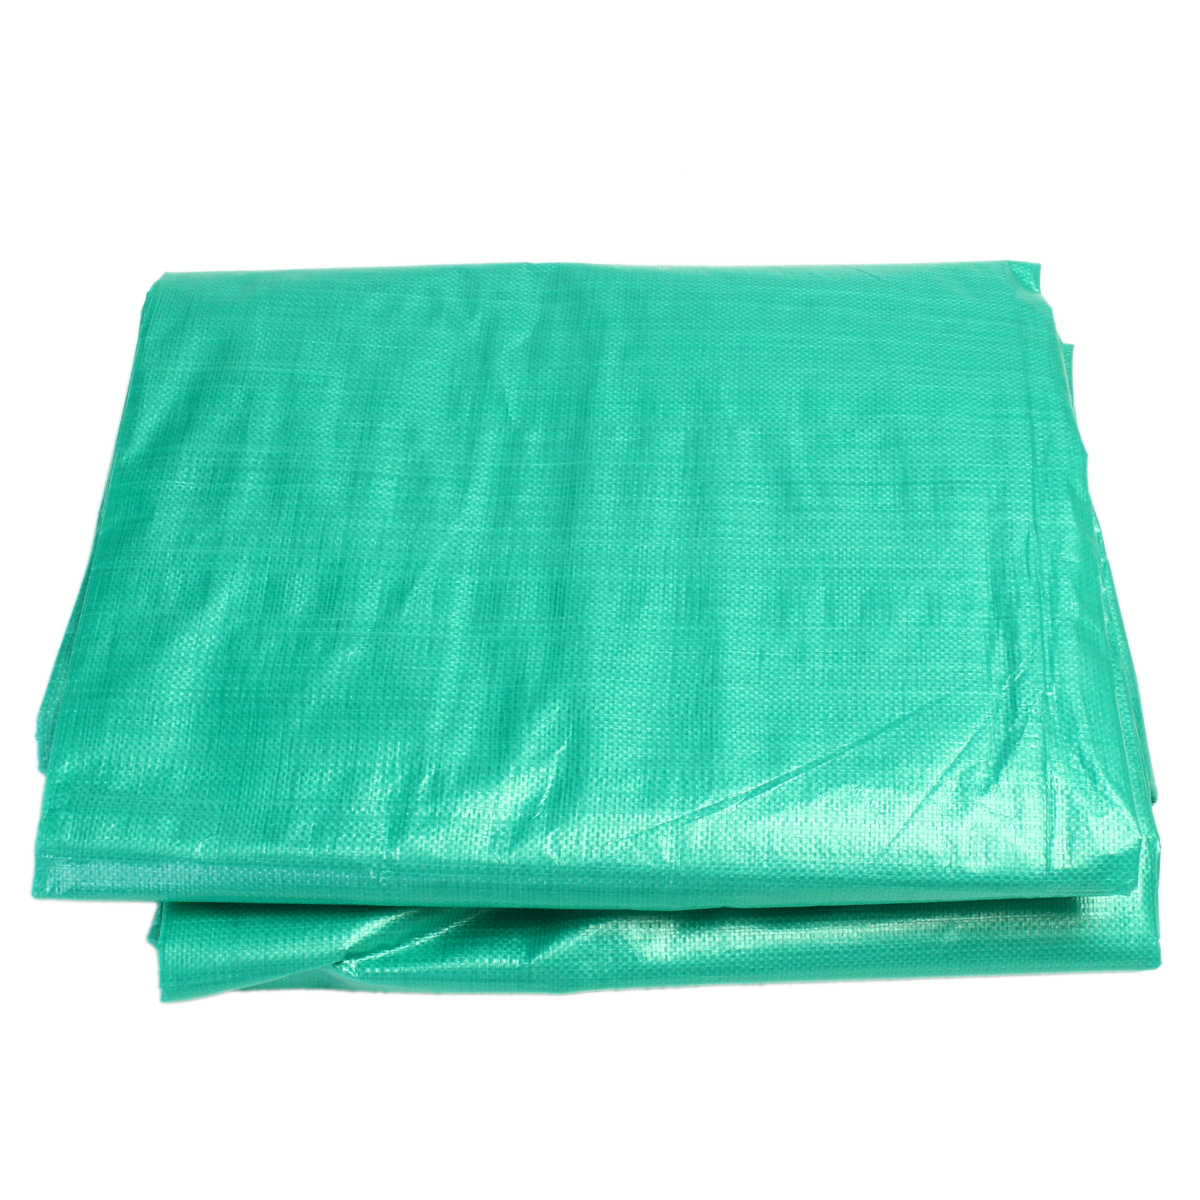 PE 33.6m/9.811.8ft Outdoor Waterproof Camping Tarpaulin Field Camp Tent Cover Car Cover Canopy